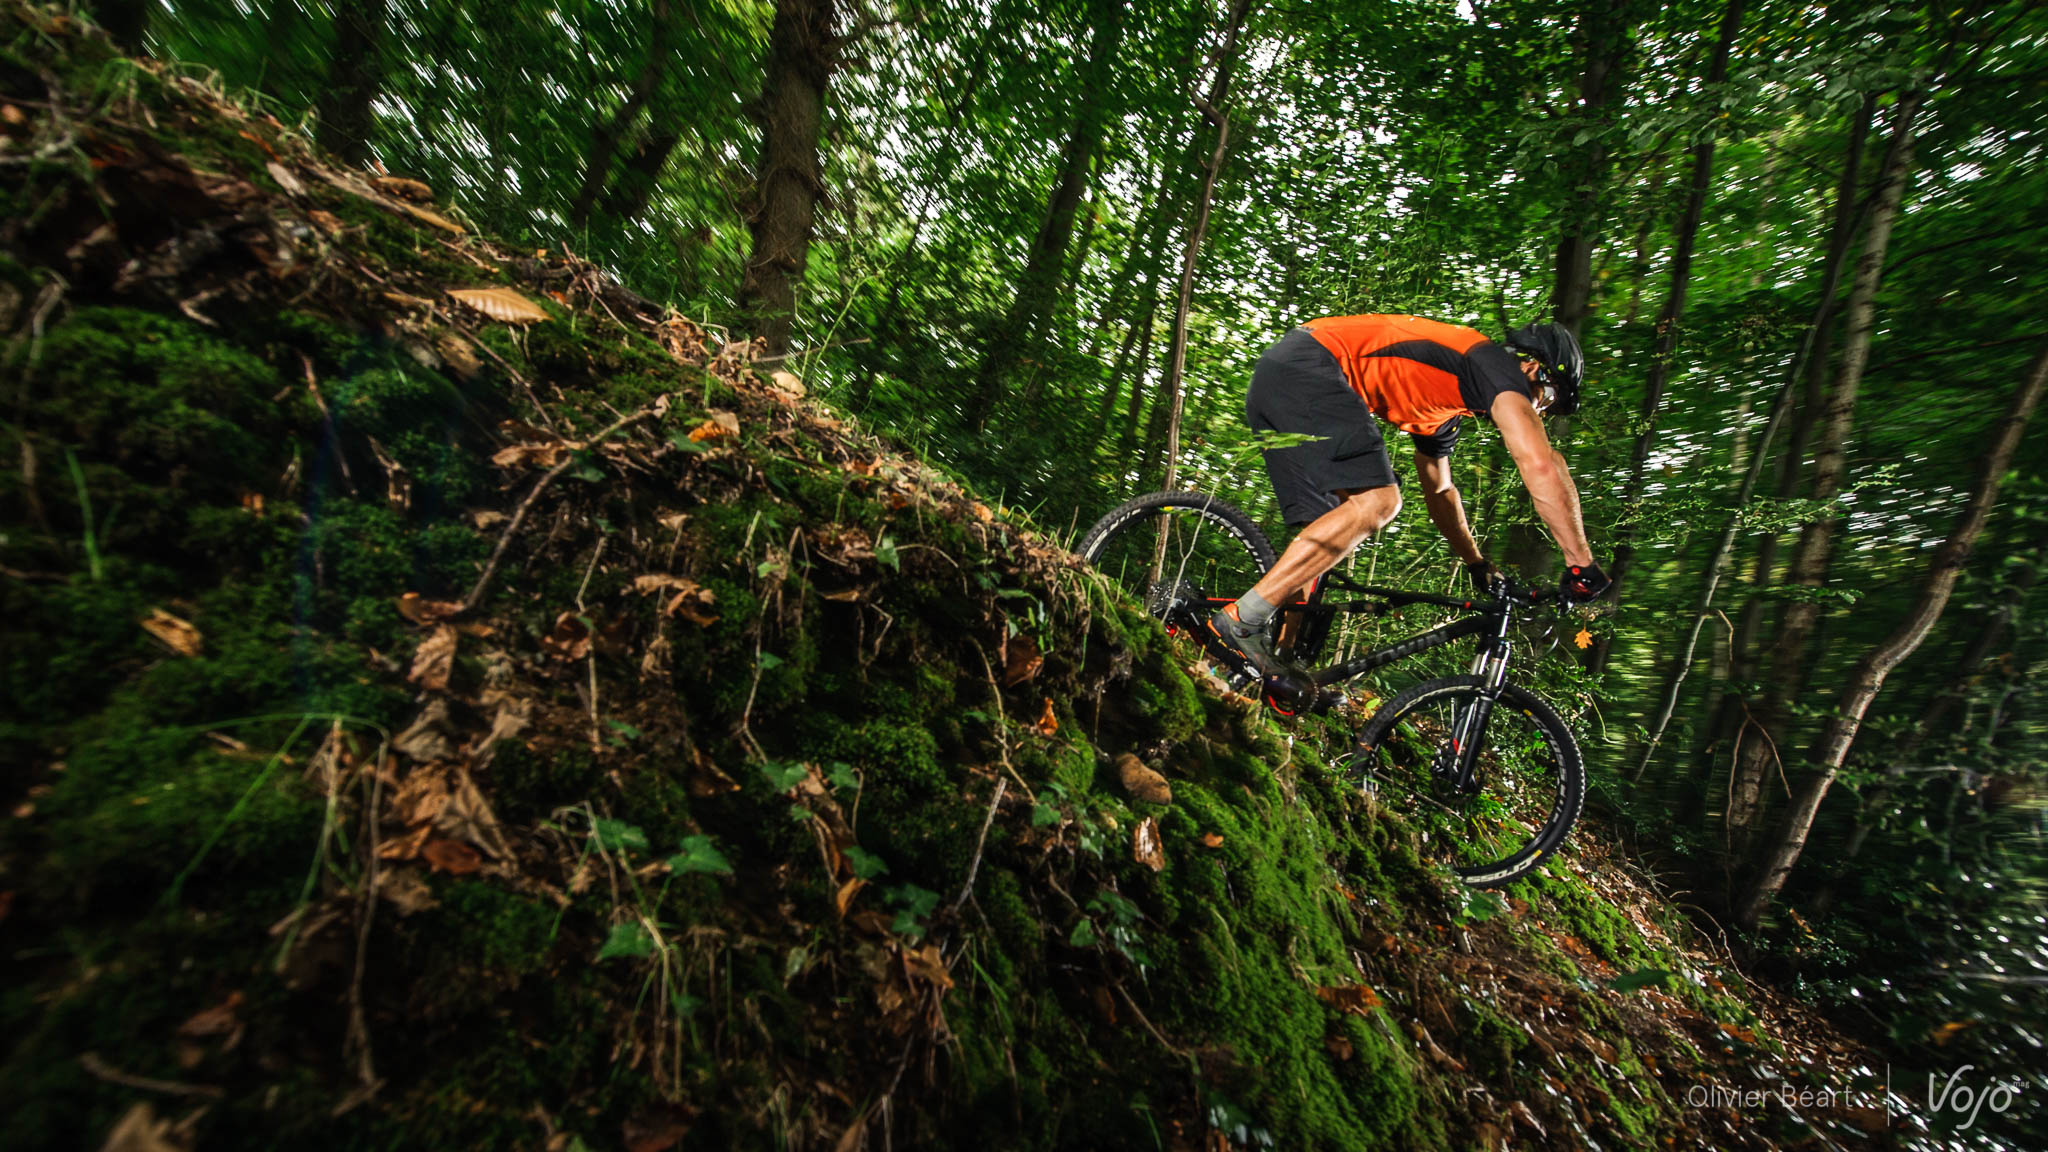 BTwin_Rafal_900s_Action_Copyright_OBeart_VojoMag-4